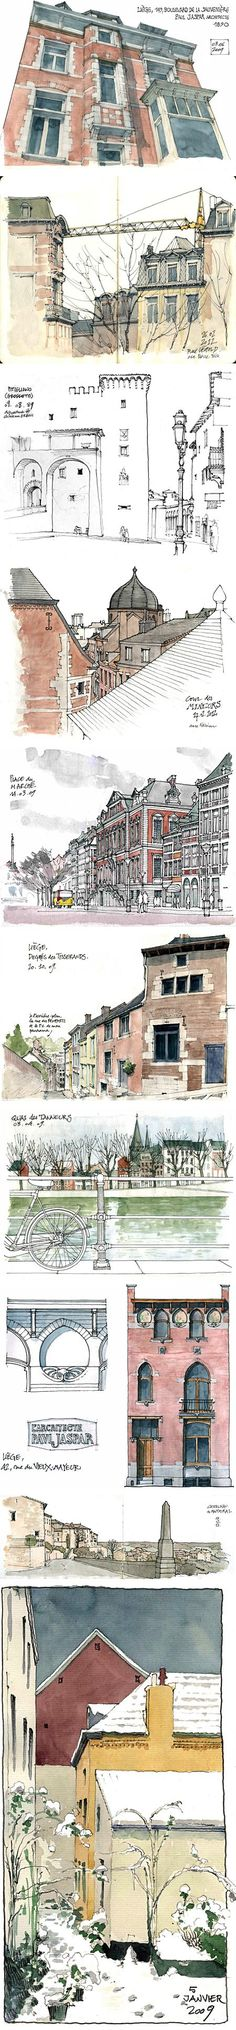 Gerard Michel - Urban Sketches